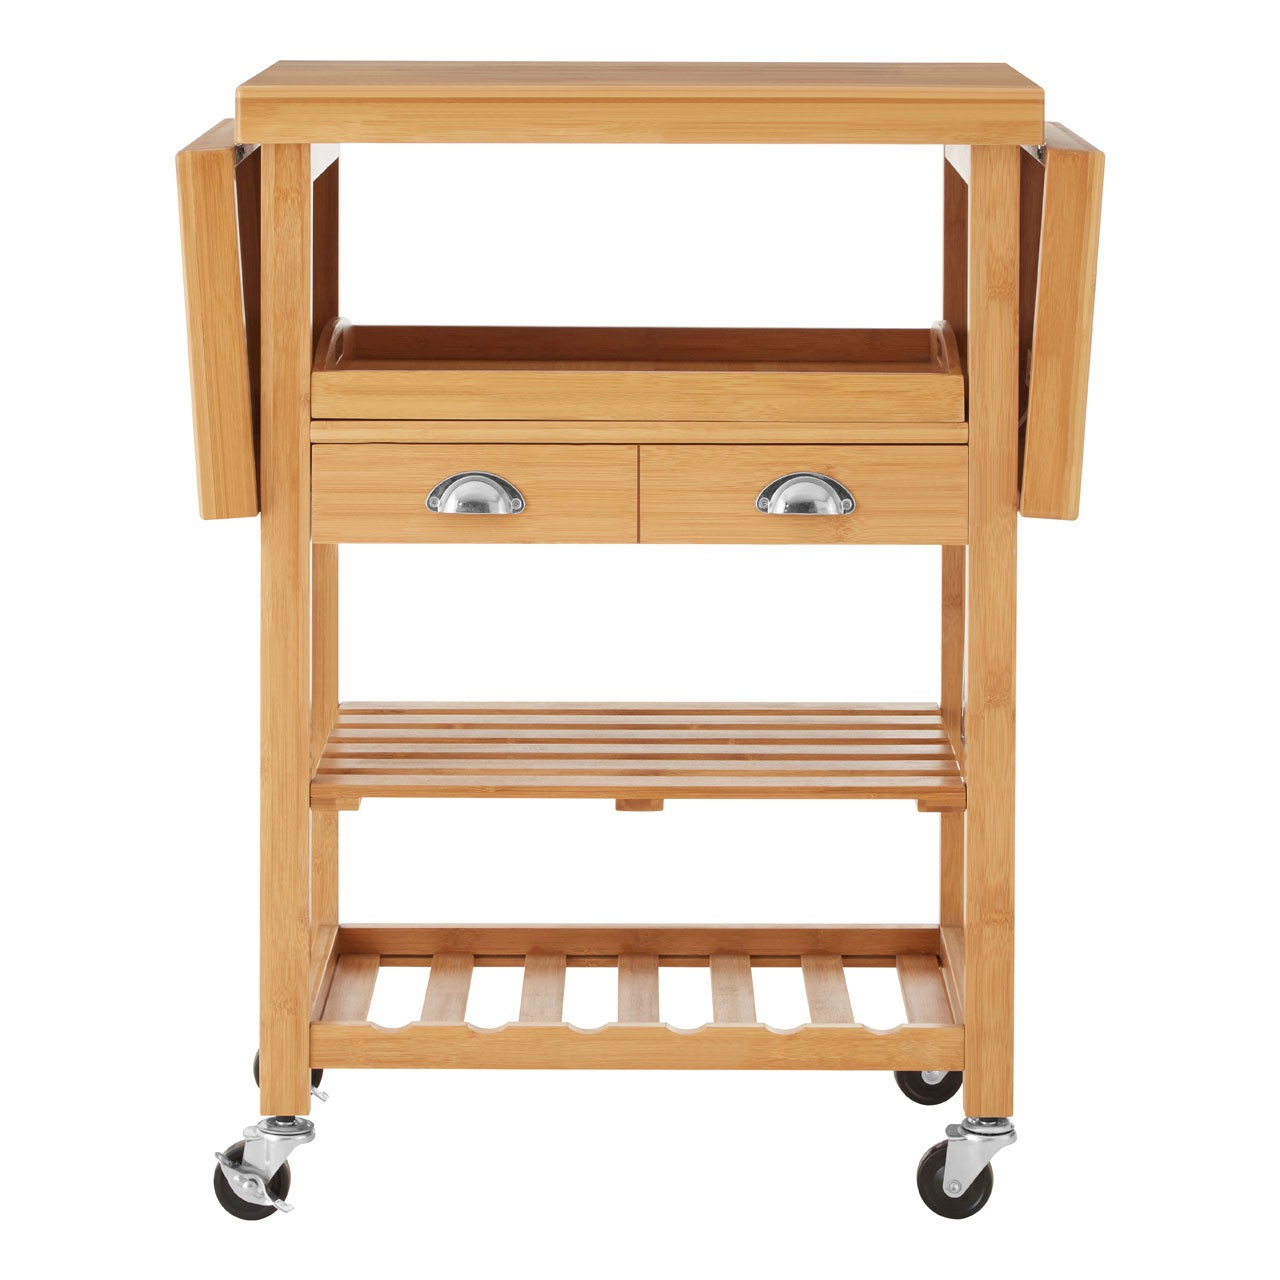 bamboo kitchen trolley two sideboards two shelves